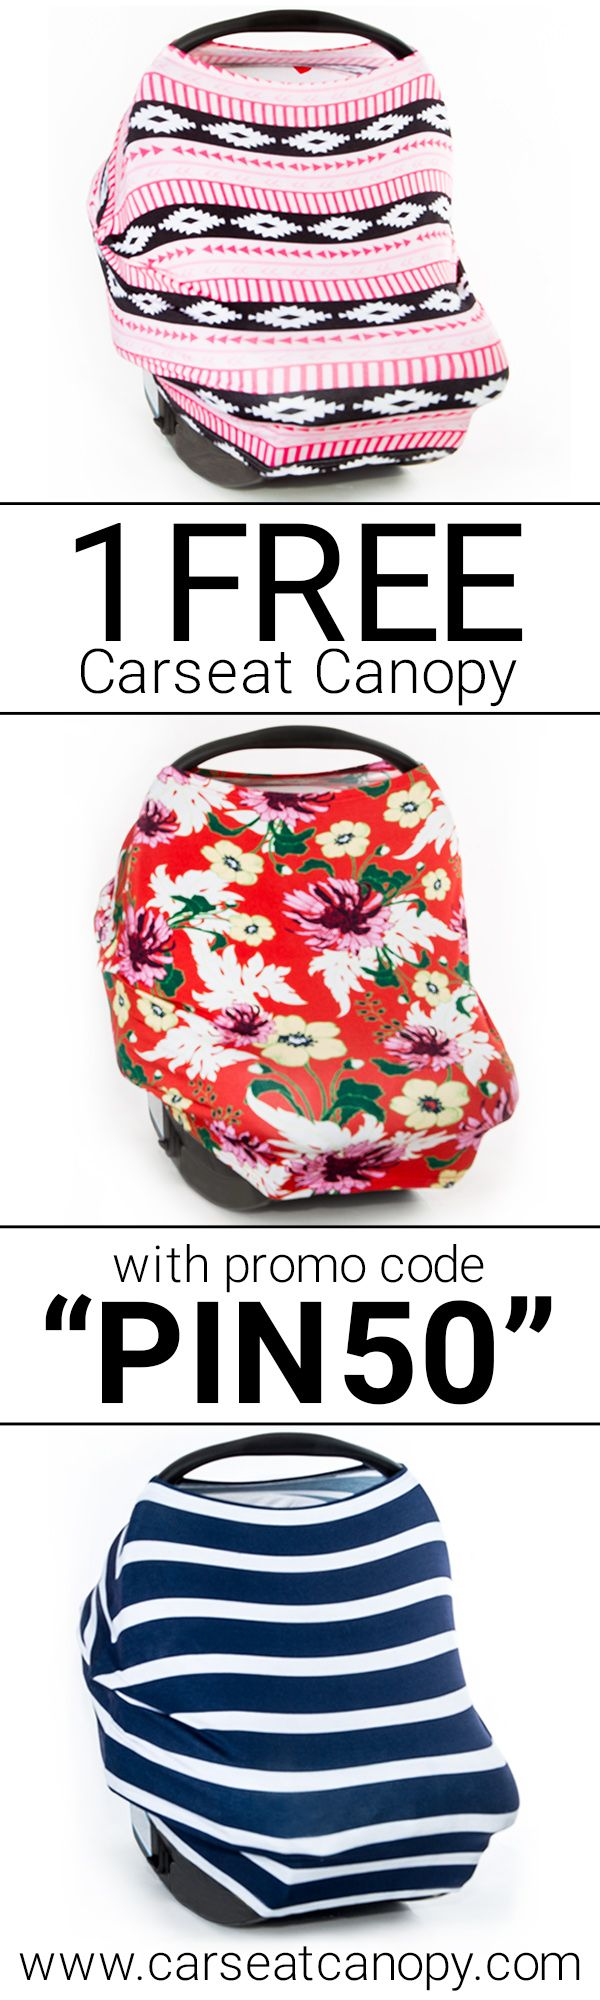 "PINNERS SPECIAL! Enjoy 1 FREE Carseat Canopy or $50 OFF site-wide with promo code ""PIN50"" at www.carseatcanopy.com! Just pay shipping!"